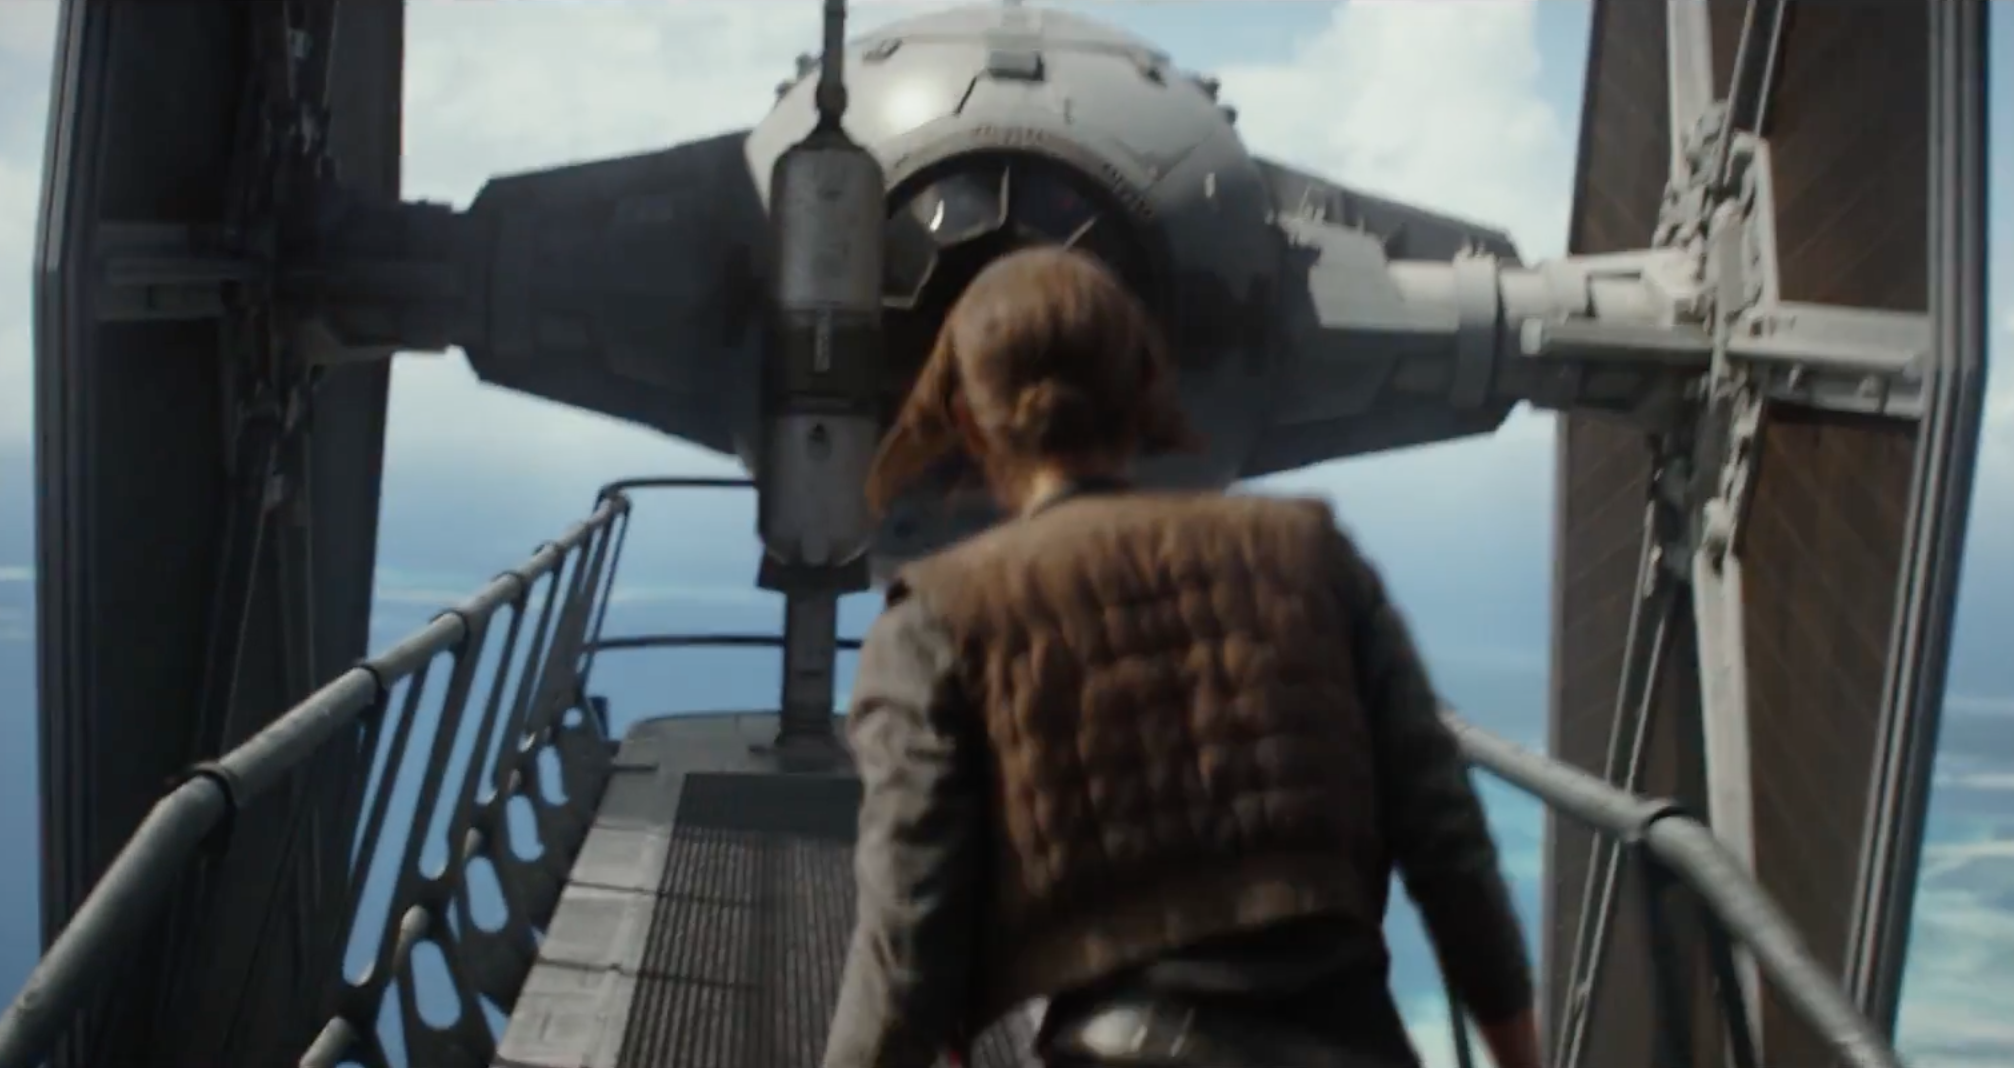 New 'Rogue One: A Star Wars Story' Trailer Has Landed